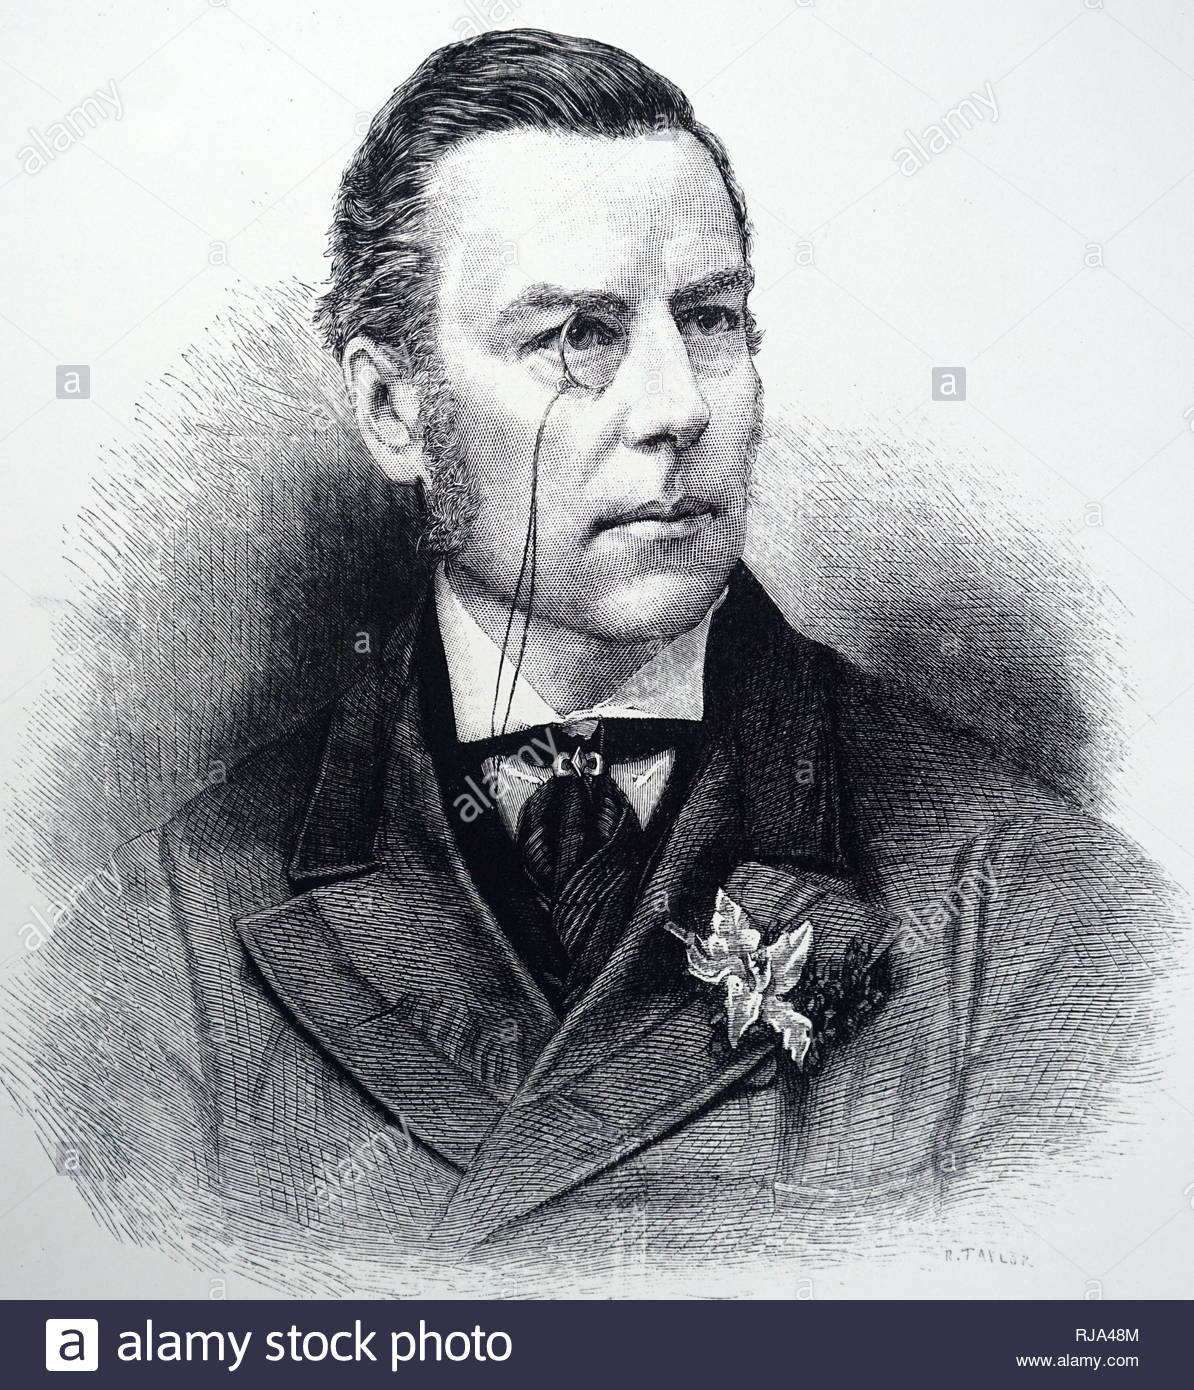 Portrait of Joseph Chamberlain (1836-1914) a British statesman who was first a radical Liberal, then, after opposing home rule for Ireland, a Liberal Unionist, and eventually served as a leading imperialist in coalition with the Conservatives. Dated 19th century - Stock Image